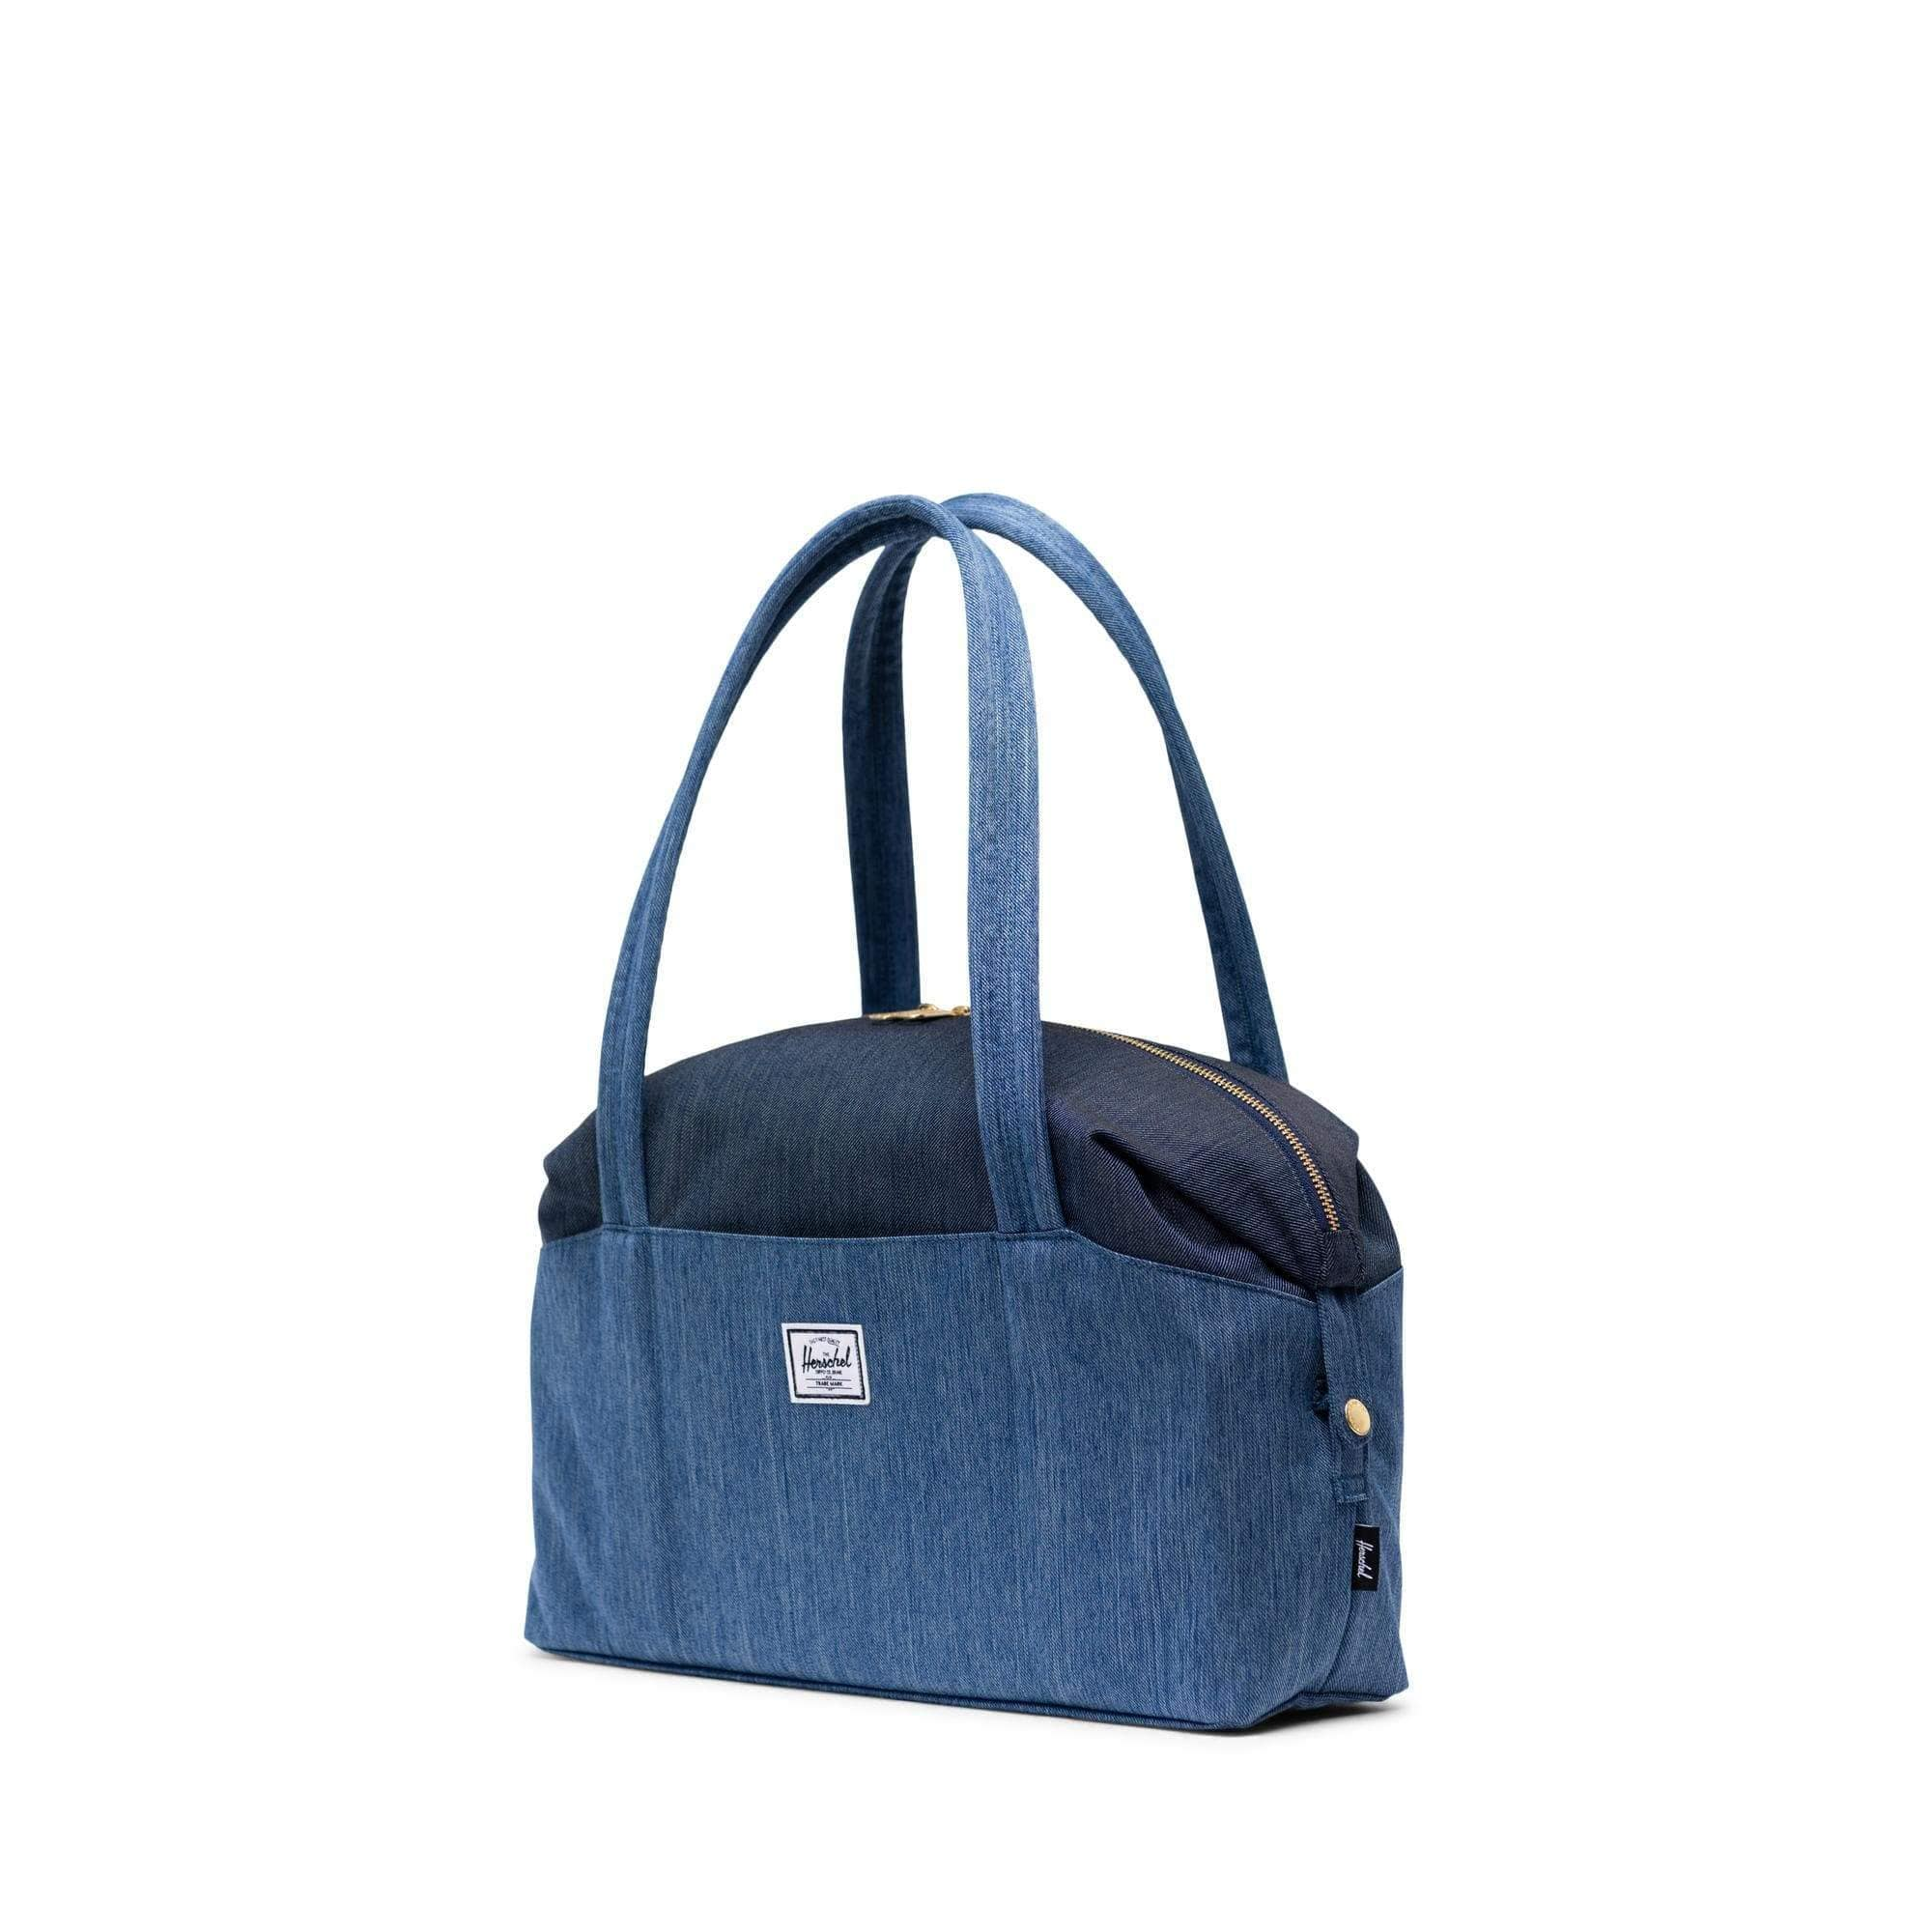 Herschel Strand S Faded Denim/Indigo Denim táska